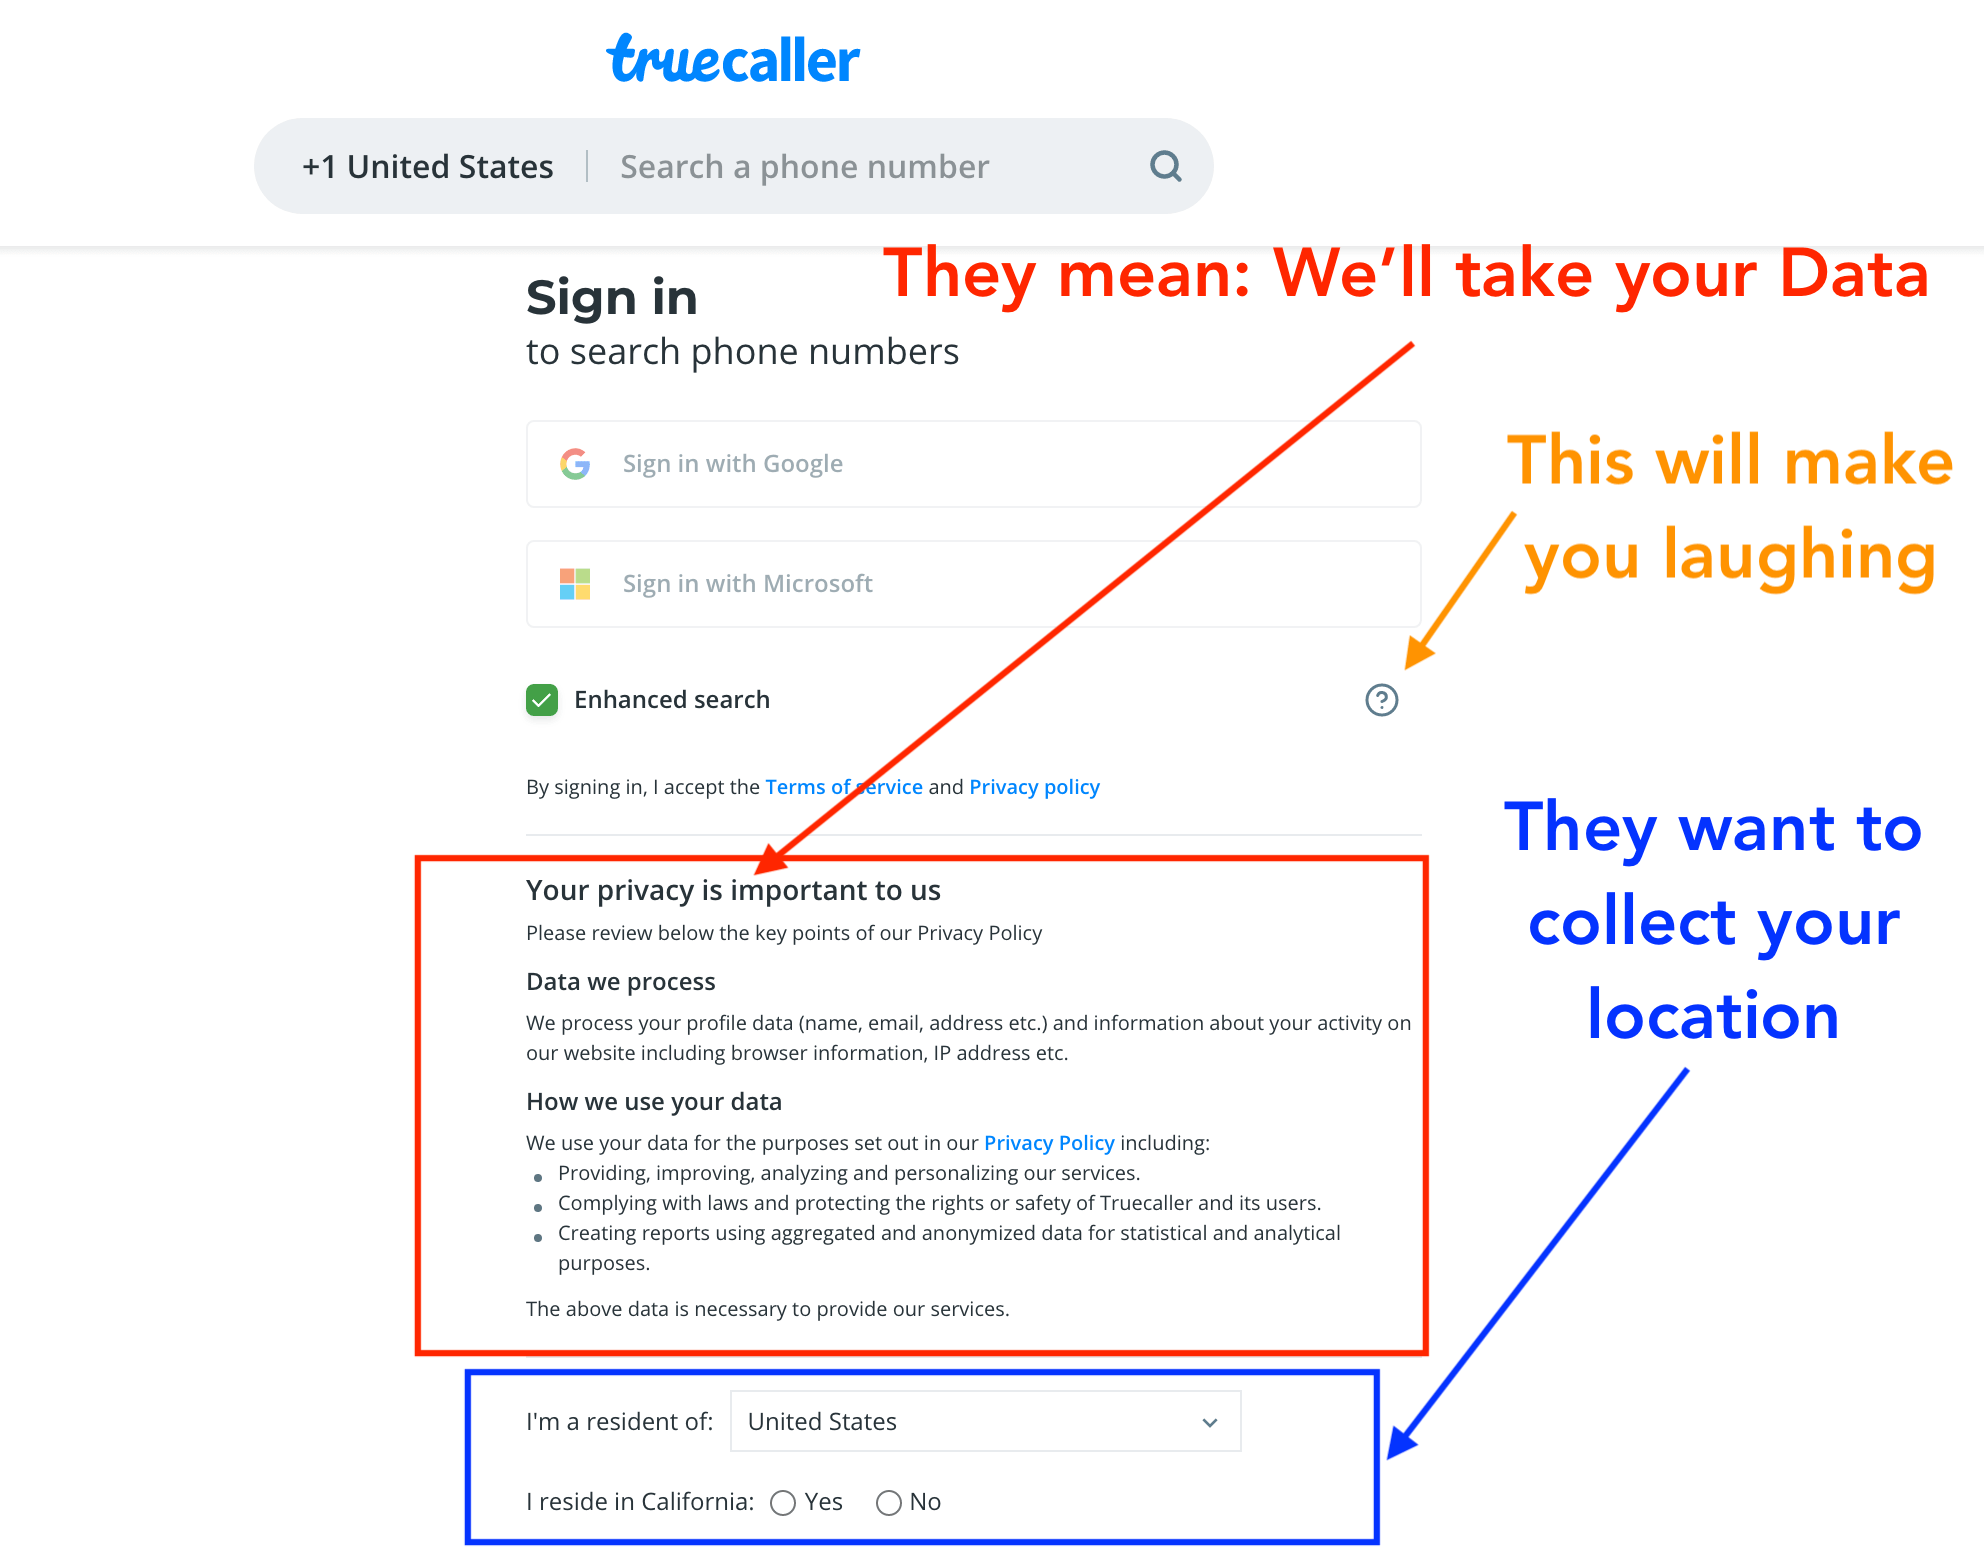 Truecaller is not for free